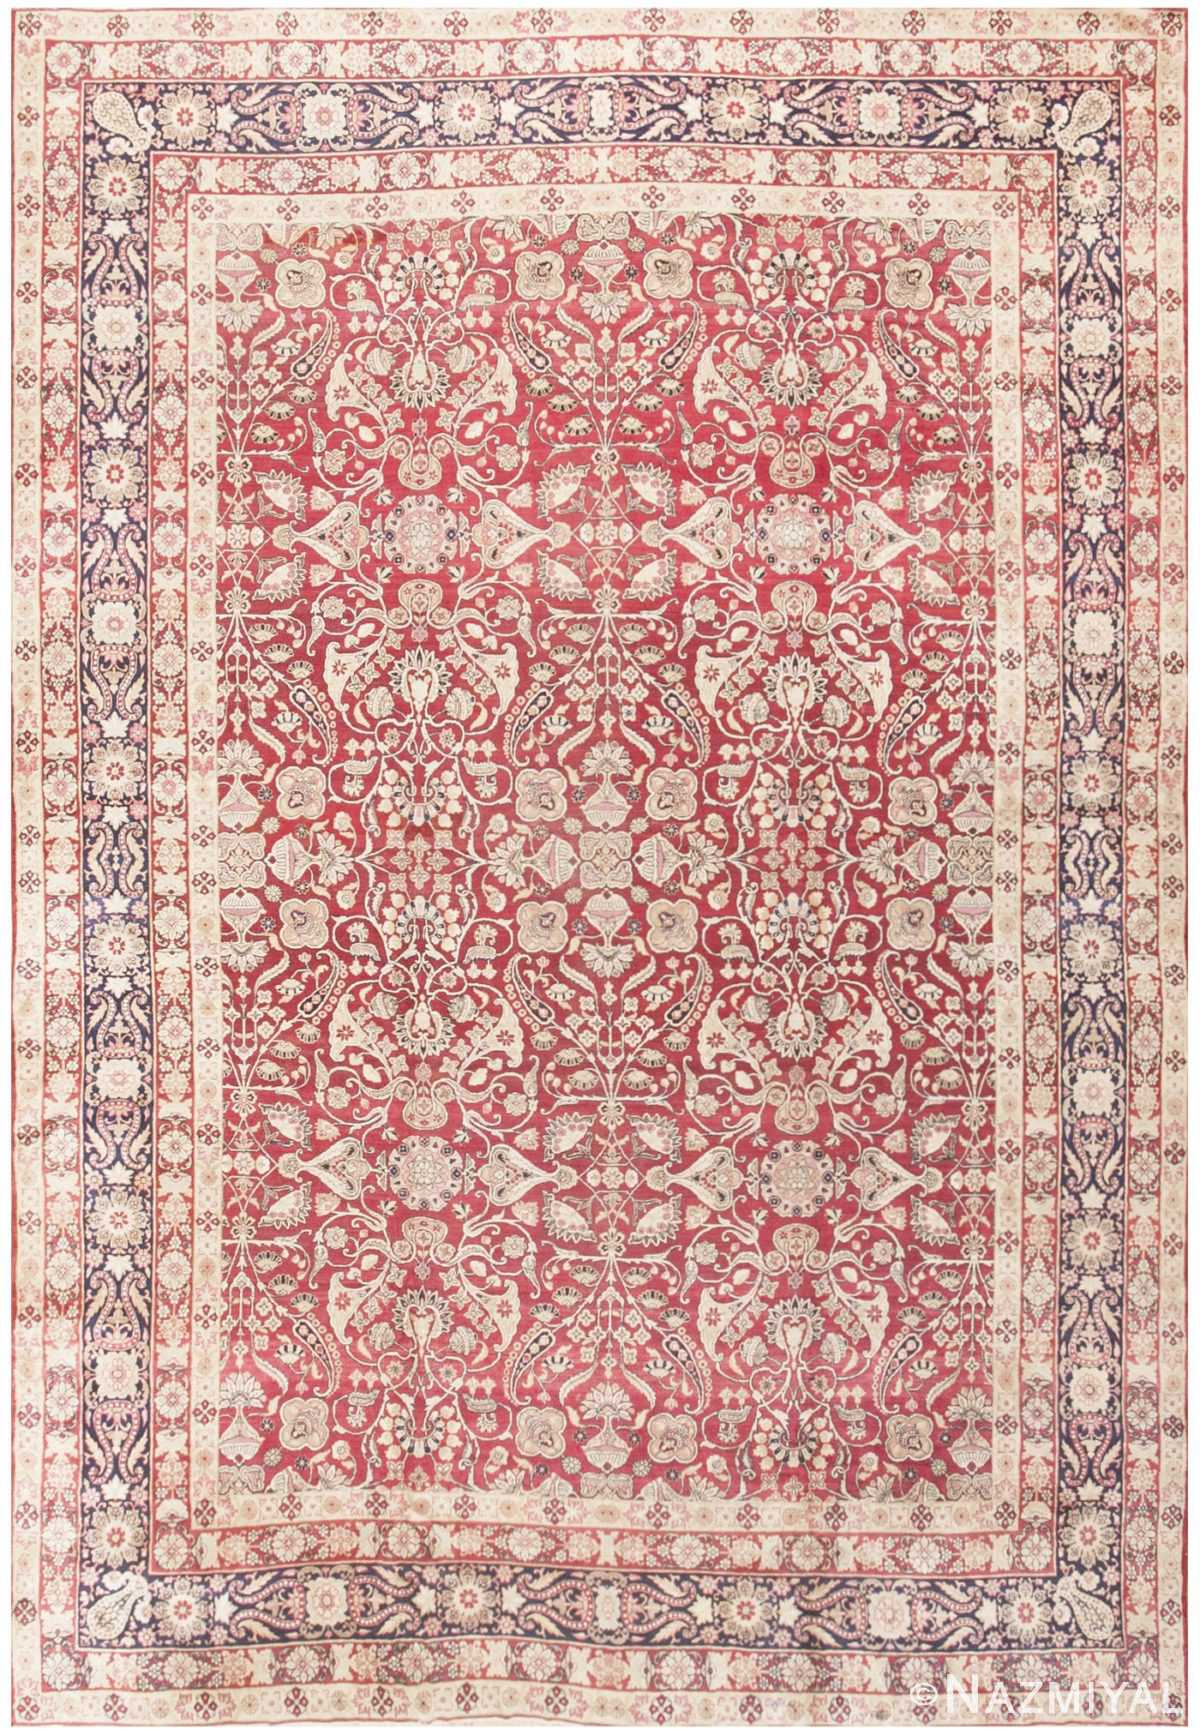 Fine Red Antique Floral Kerman Rug 50370 Nazmiyal